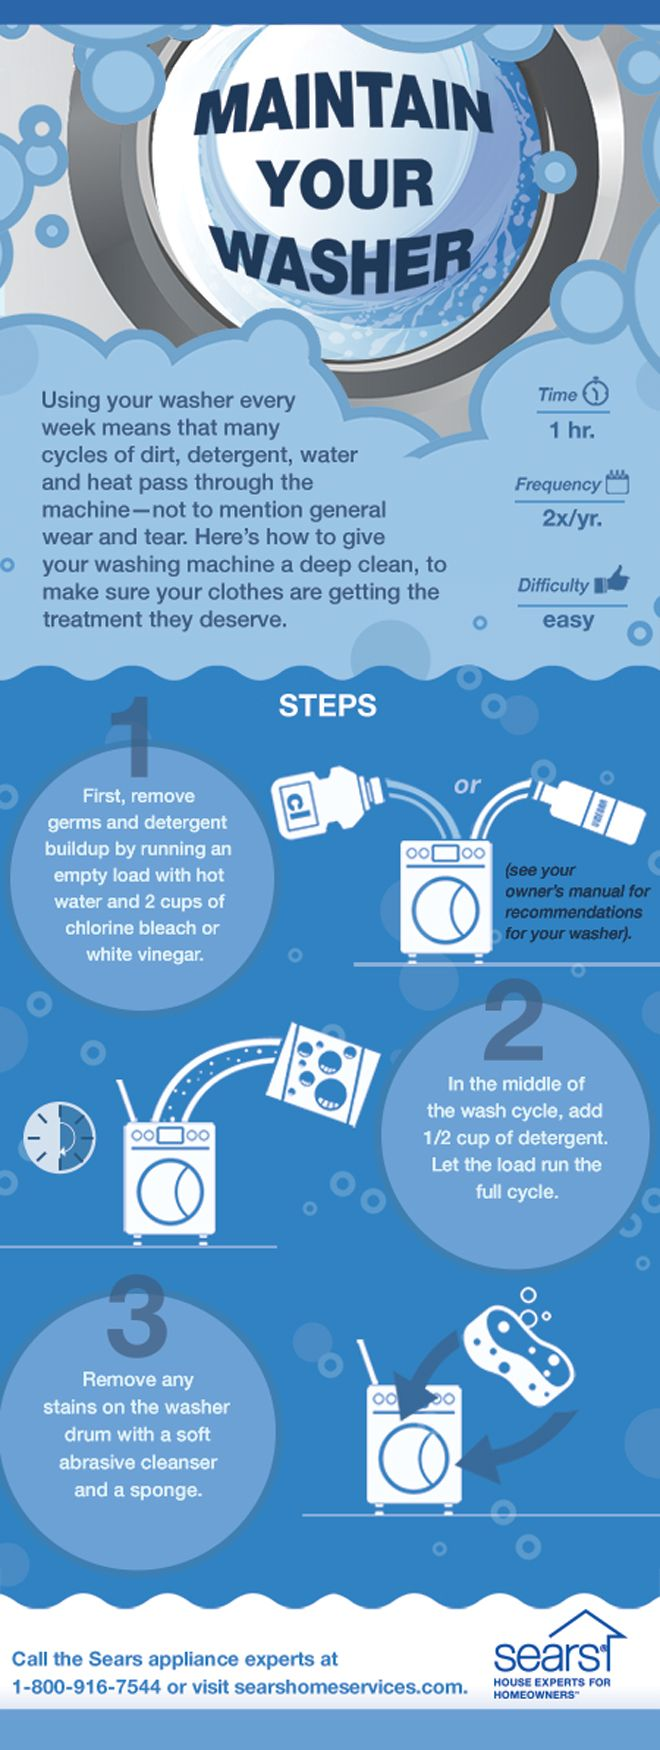 Washing Machine Maintenance Tip: Give your washer a little TLC by cleaning it twice a year. This cleaning hack combines water and vinegar or bleach to remove germs and detergent buildup.